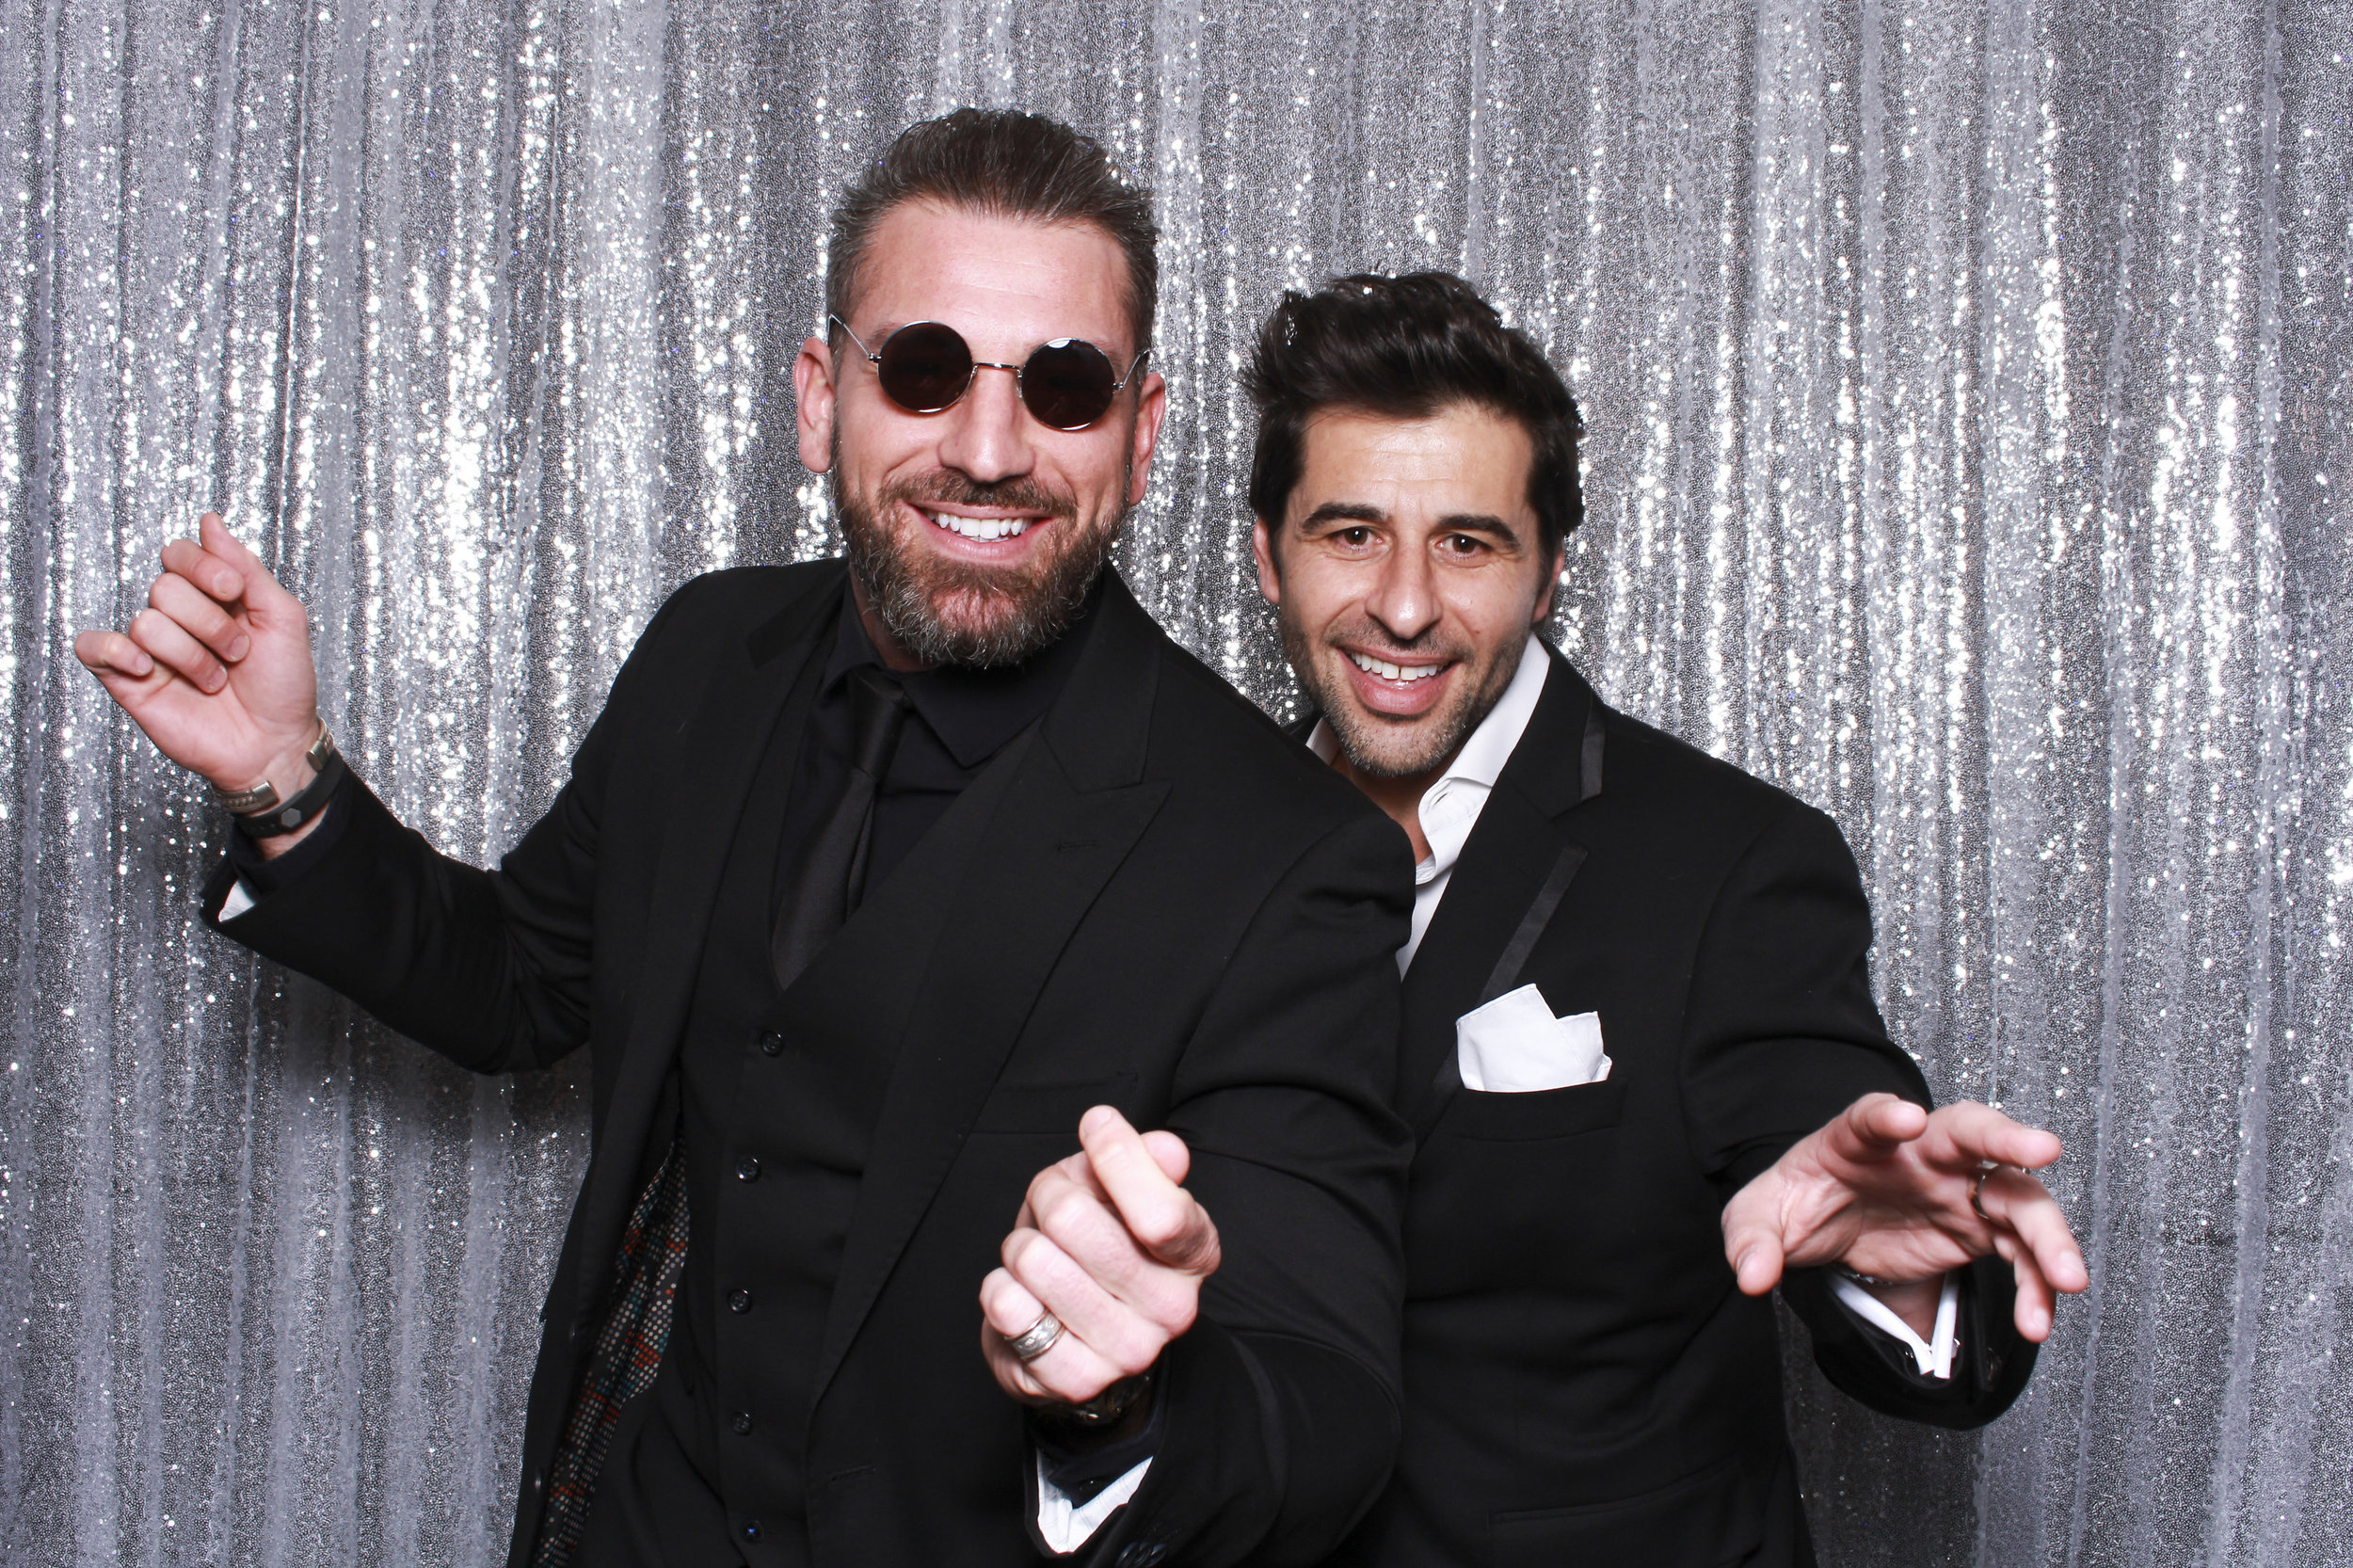 Photo+booth+hire+sydney+wollongong+silver+sequin3.jpg